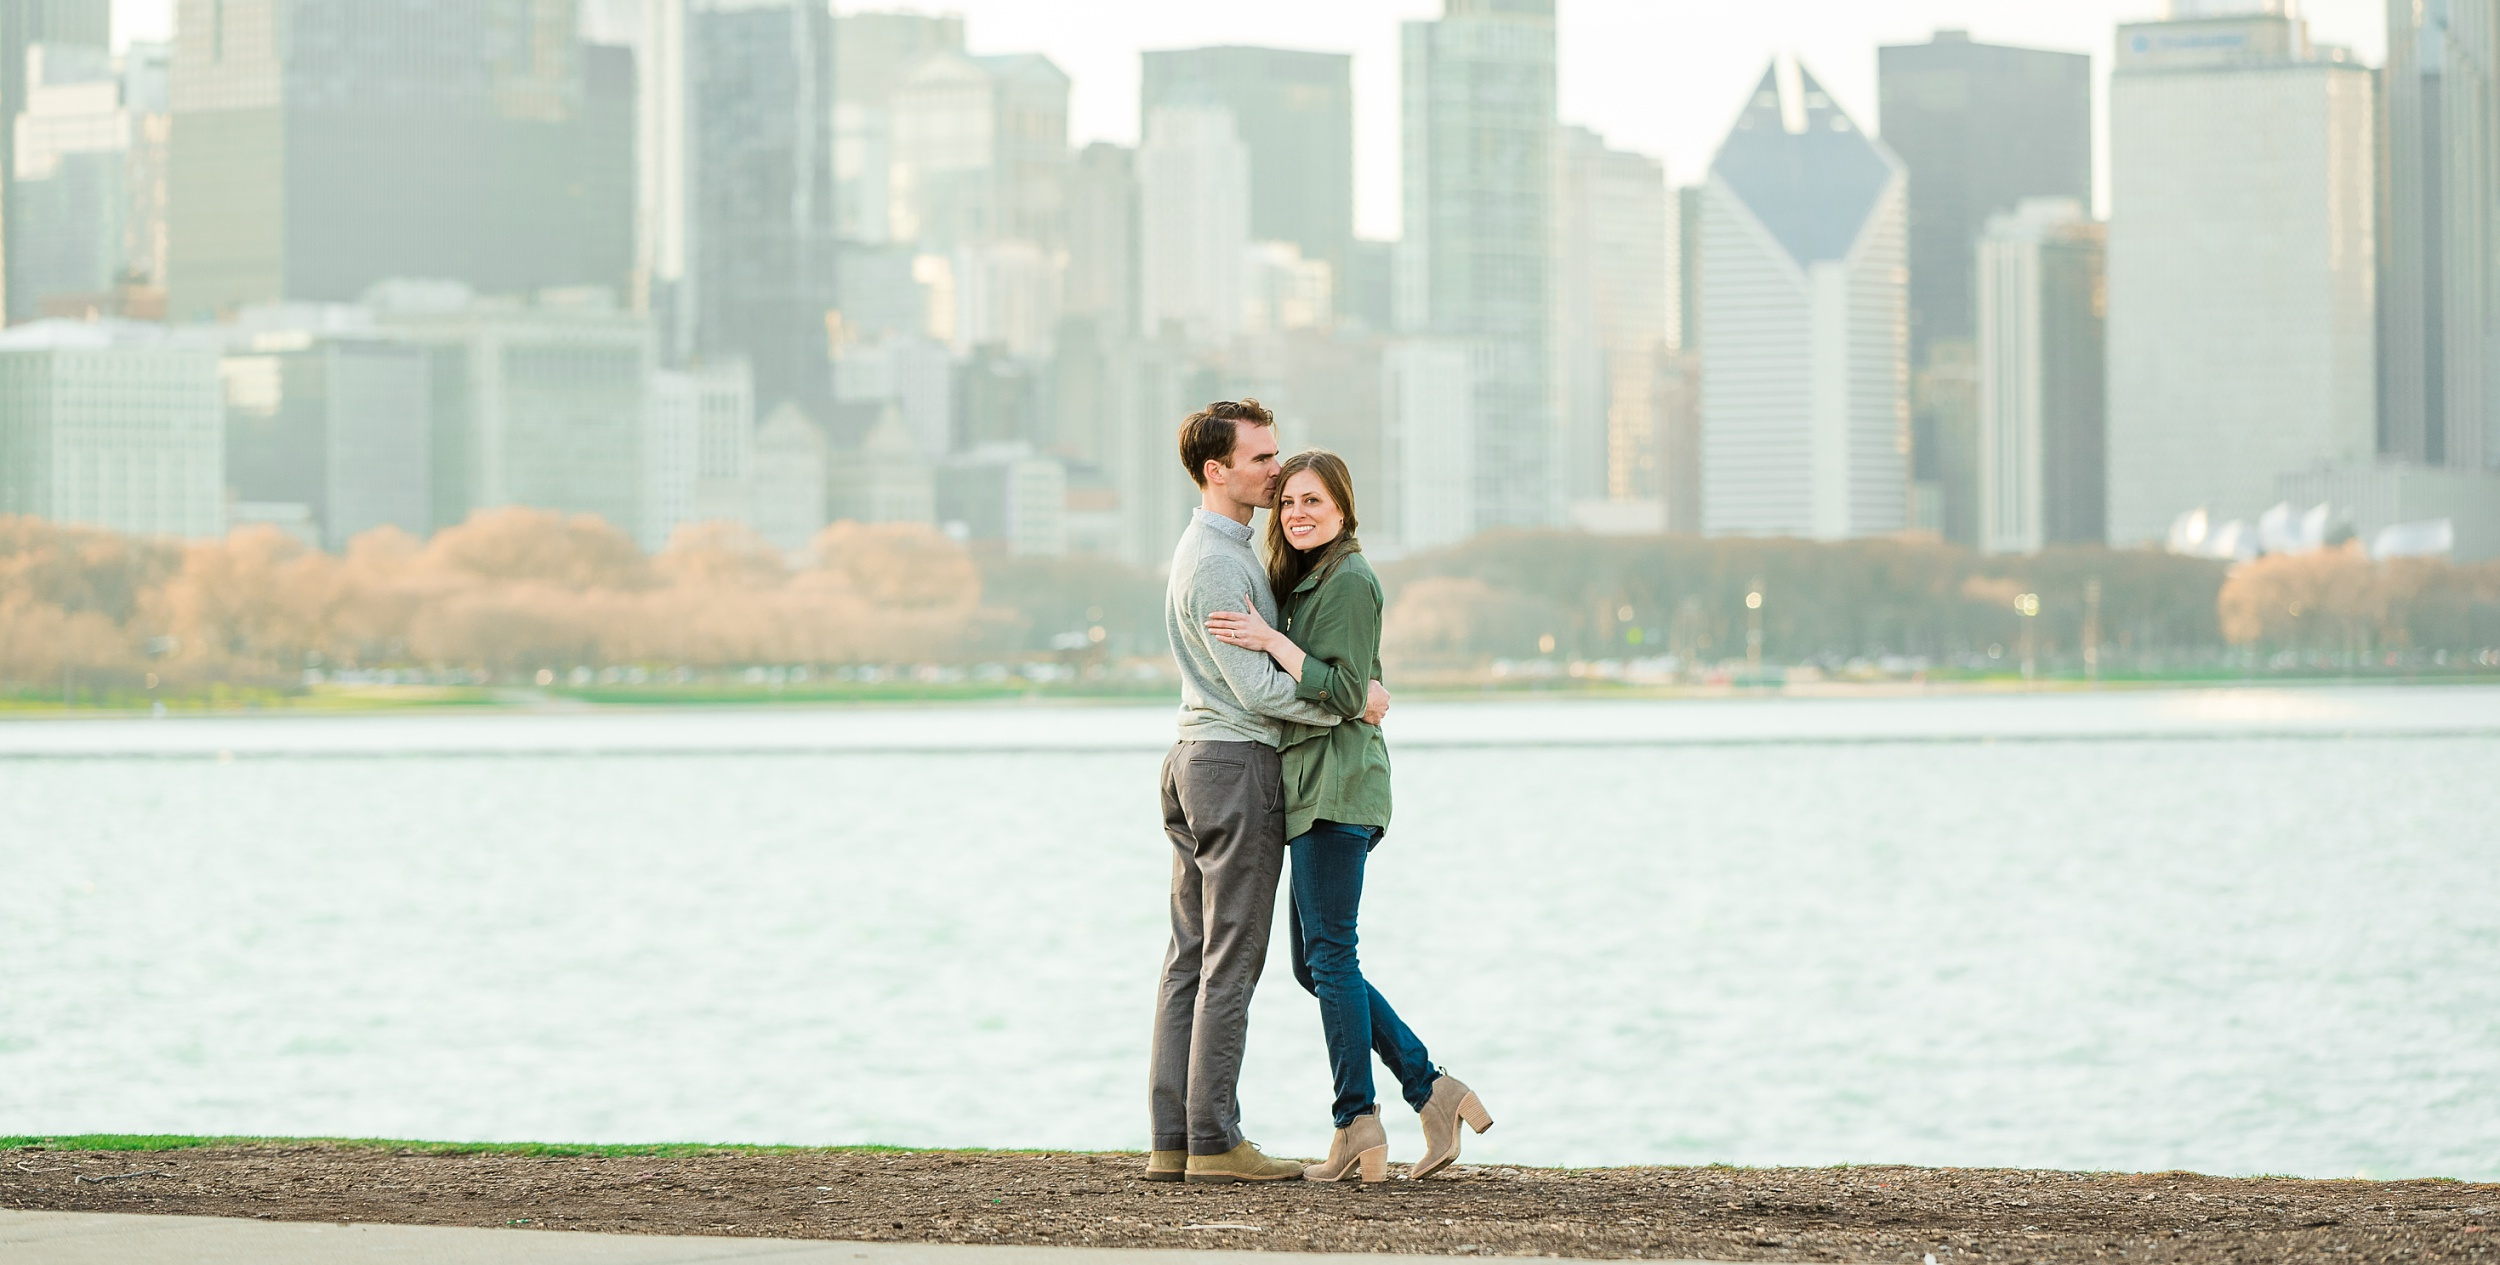 chicago_engagement_wedding_south_bend_wedding_photographer (10).jpg